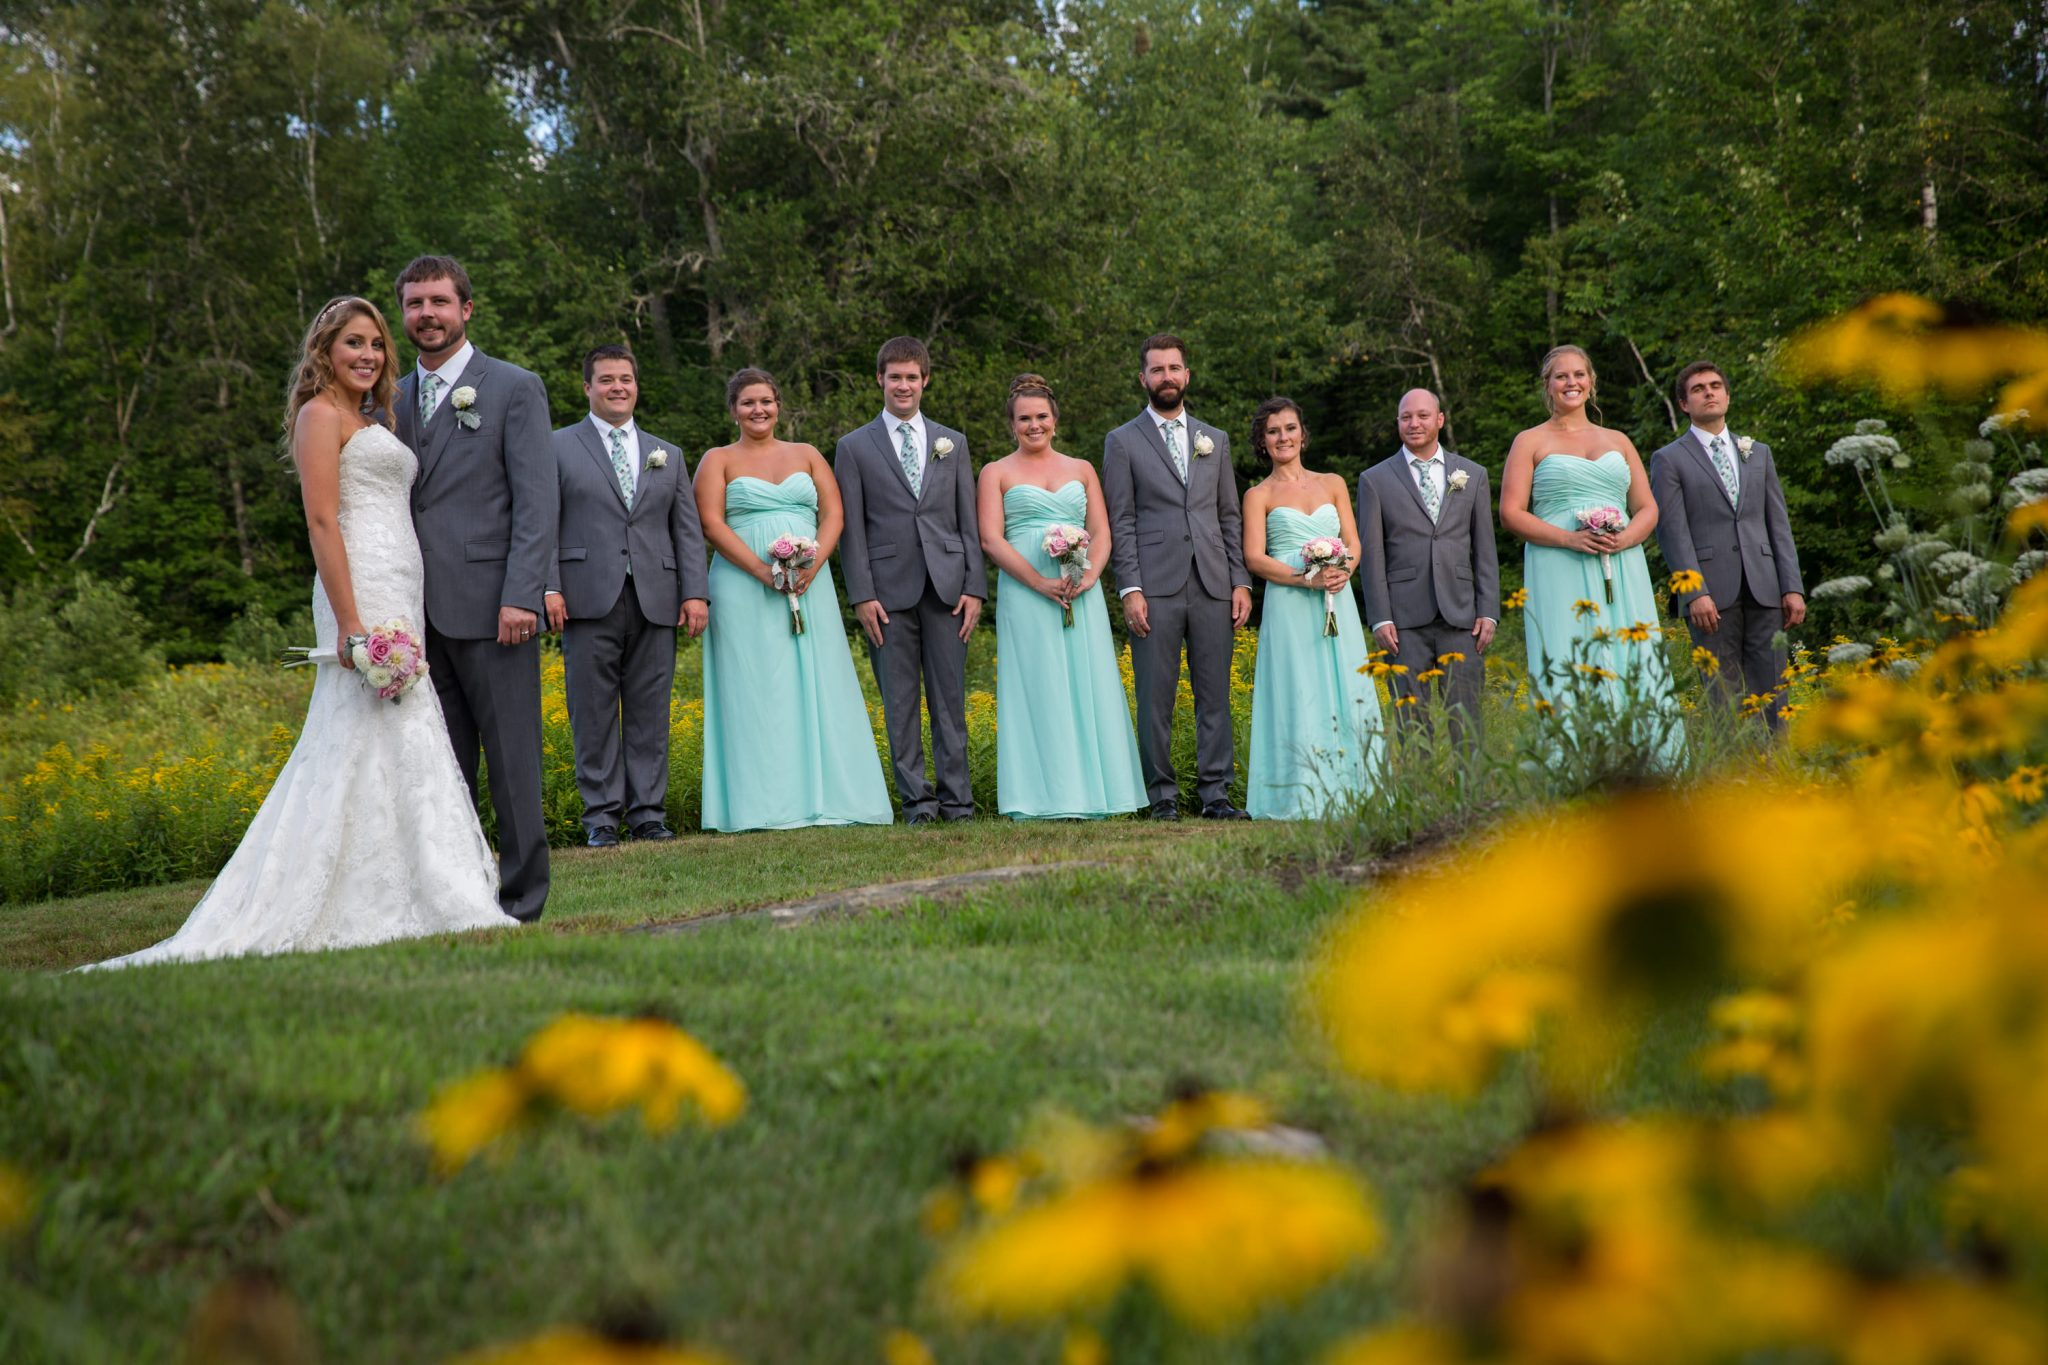 Wedding party portrait among flowers captured at the Alerin Barn in Vermont